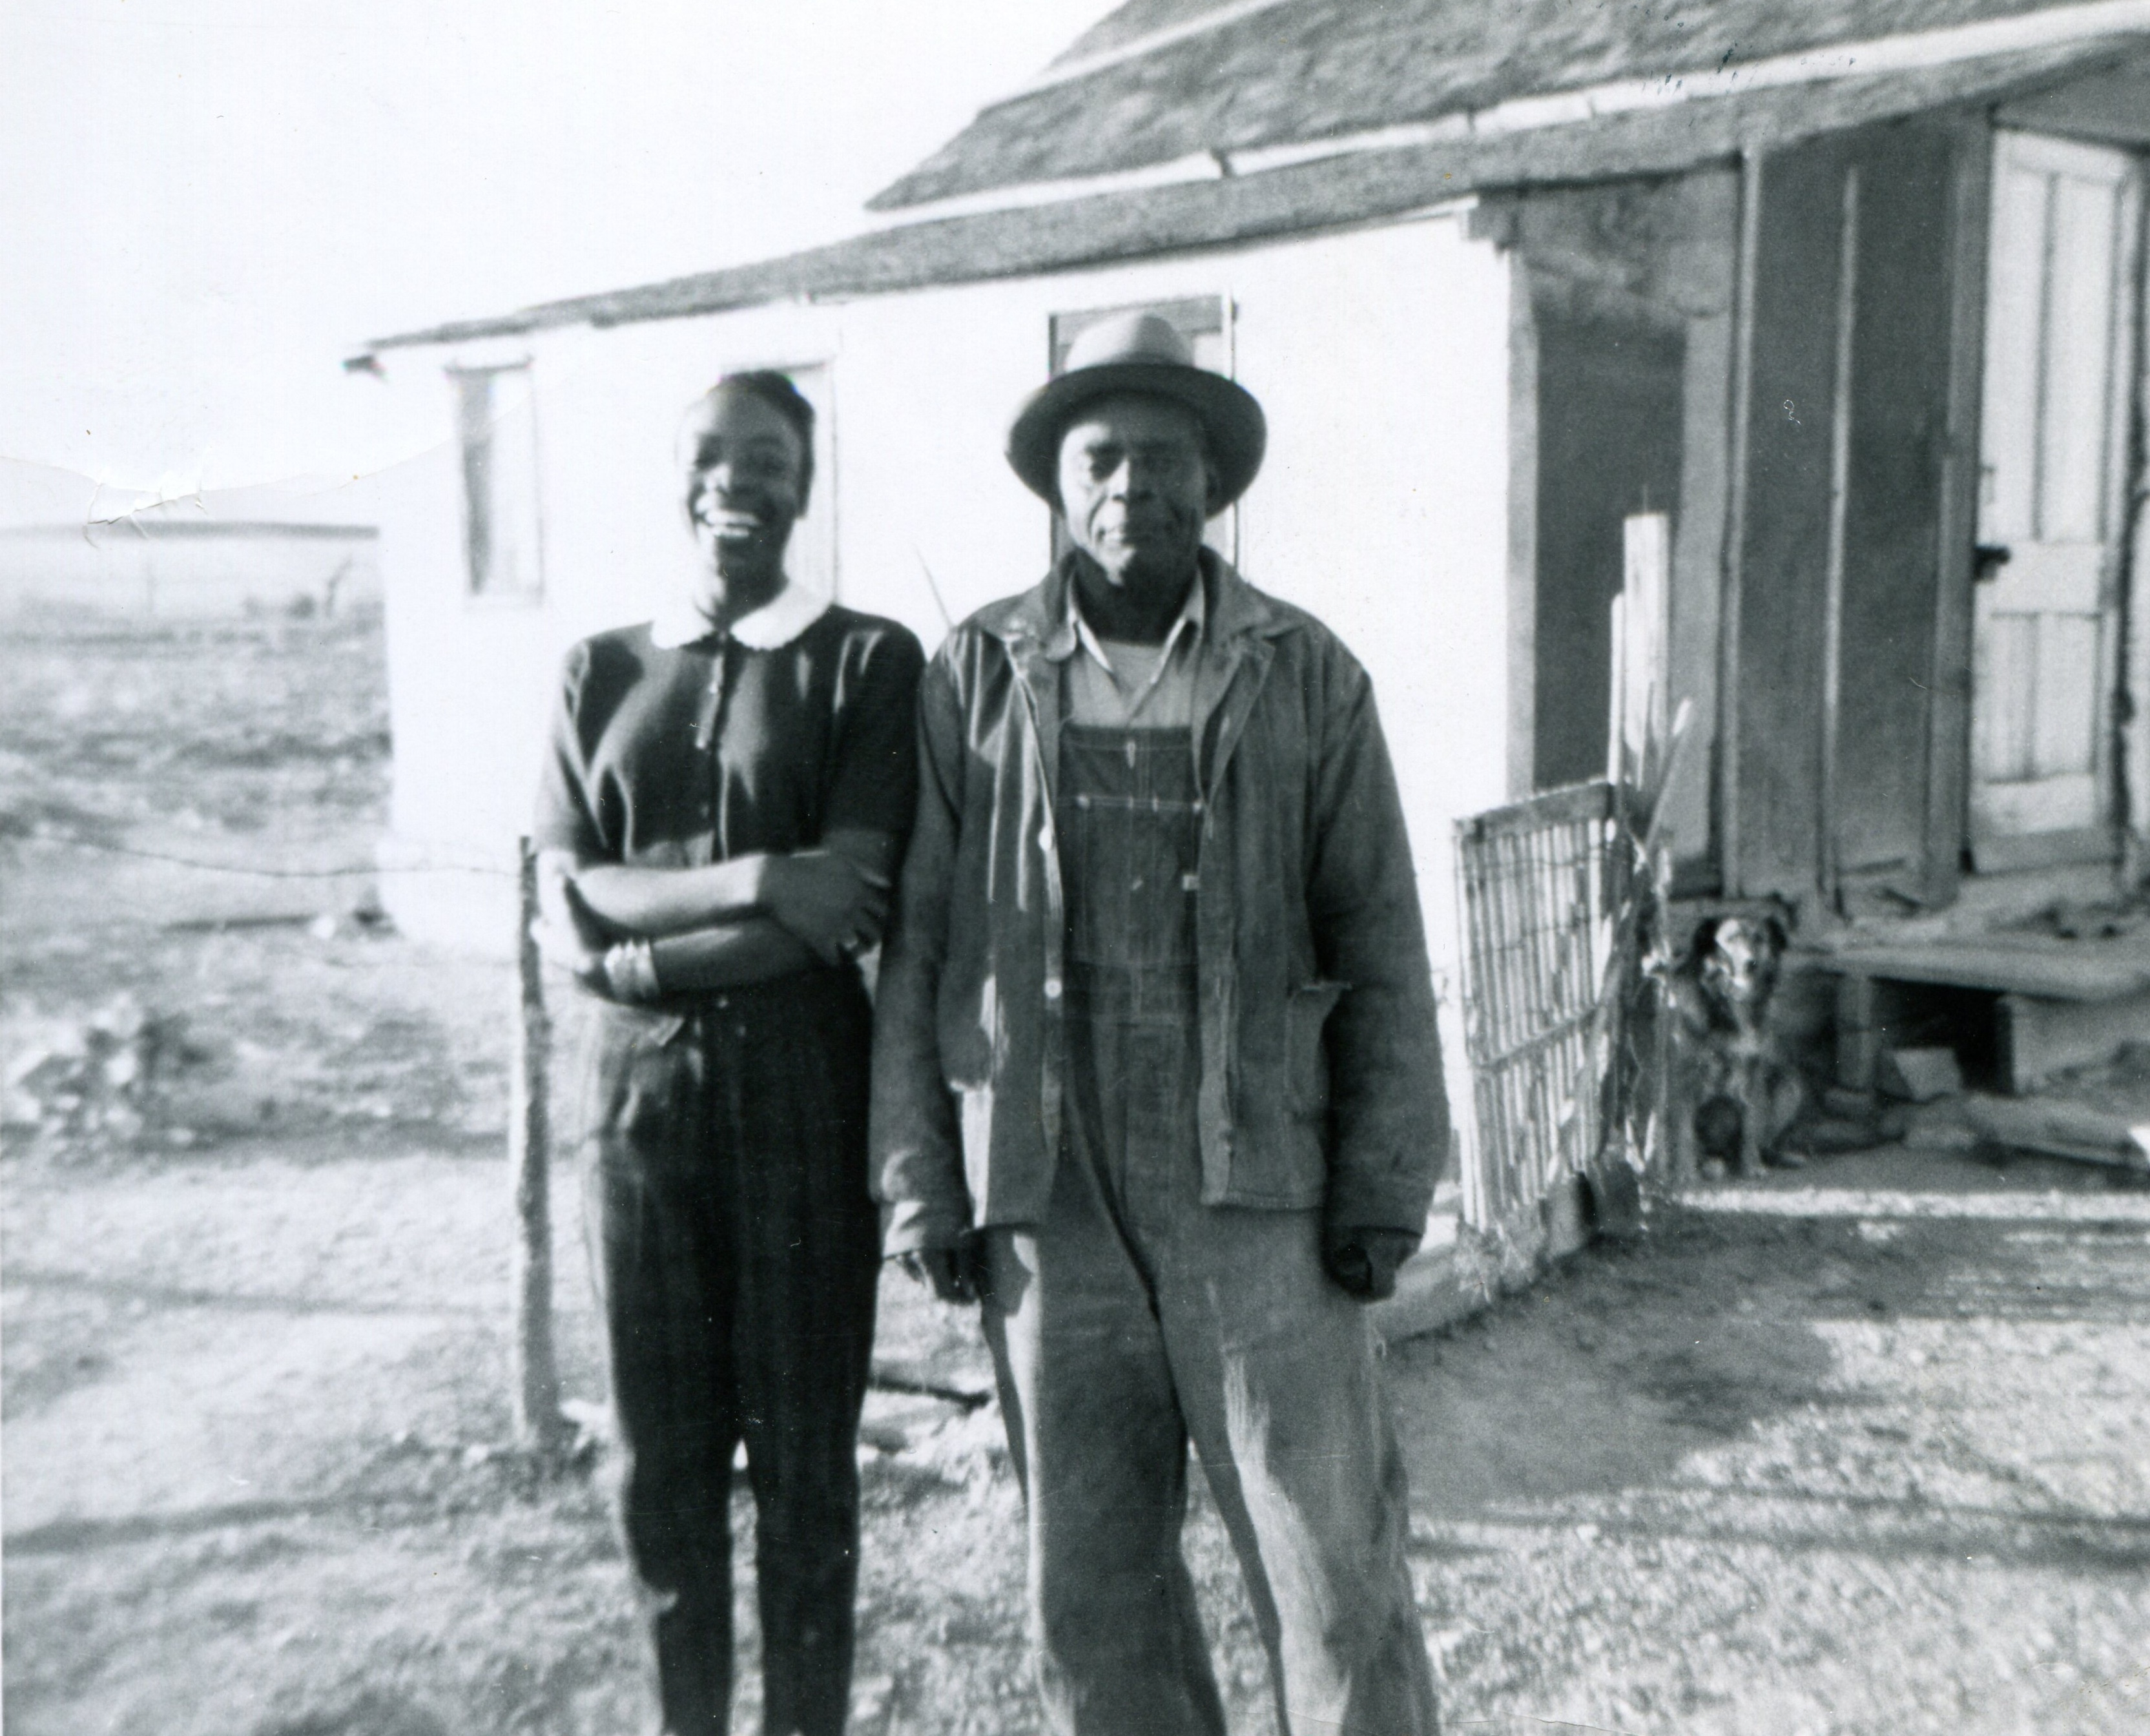 Couple at The Dry farming community